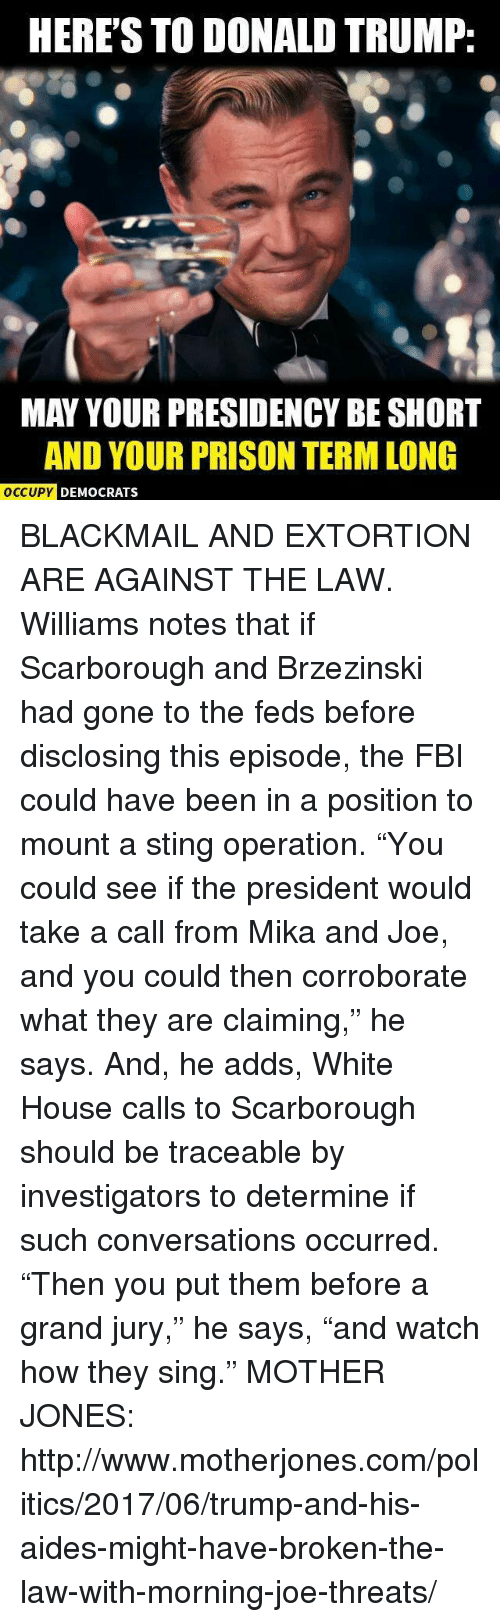 """Donald Trump, Fbi, and Politics: HERE'S TO DONALD TRUMP:  MAY YOUR PRESIDENCY BE SHORT  AND YOUR PRISON TERM LONG  OCCUPY DEMC  DEMOCRATS BLACKMAIL AND EXTORTION ARE AGAINST THE LAW. Williams notes that if Scarborough and Brzezinski had gone to the feds before disclosing this episode, the FBI could have been in a position to mount a sting operation. """"You could see if the president would take a call from Mika and Joe, and you could then corroborate what they are claiming,"""" he says. And, he adds, White House calls to Scarborough should be traceable by investigators to determine if such conversations occurred. """"Then you put them before a grand jury,"""" he says, """"and watch how they sing."""" MOTHER JONES:  http://www.motherjones.com/politics/2017/06/trump-and-his-aides-might-have-broken-the-law-with-morning-joe-threats/"""